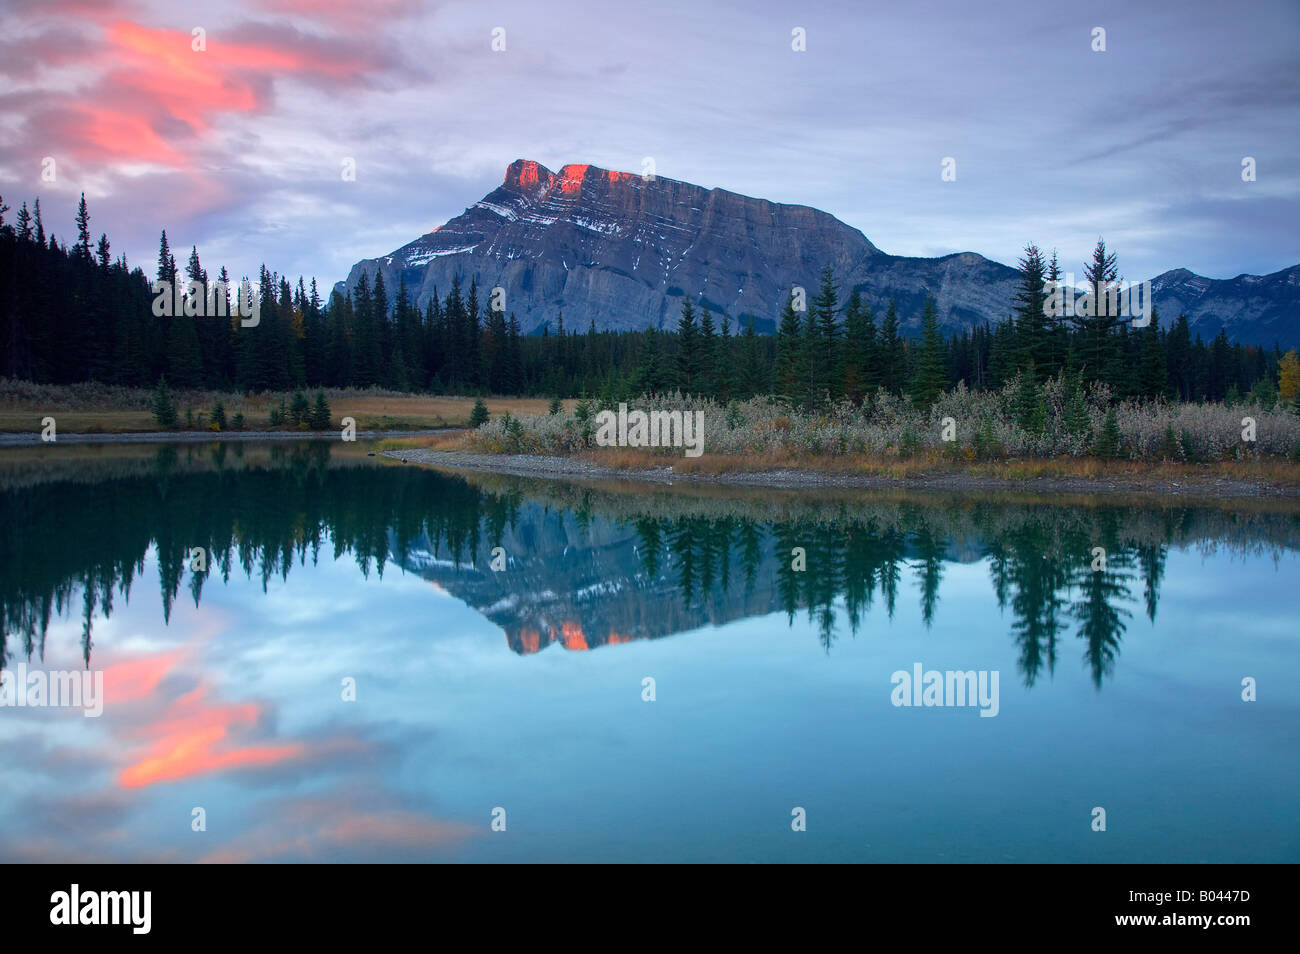 Mount Rundle and Vermillion Lakes, Banff National Park, Alberta, Canada Stock Photo